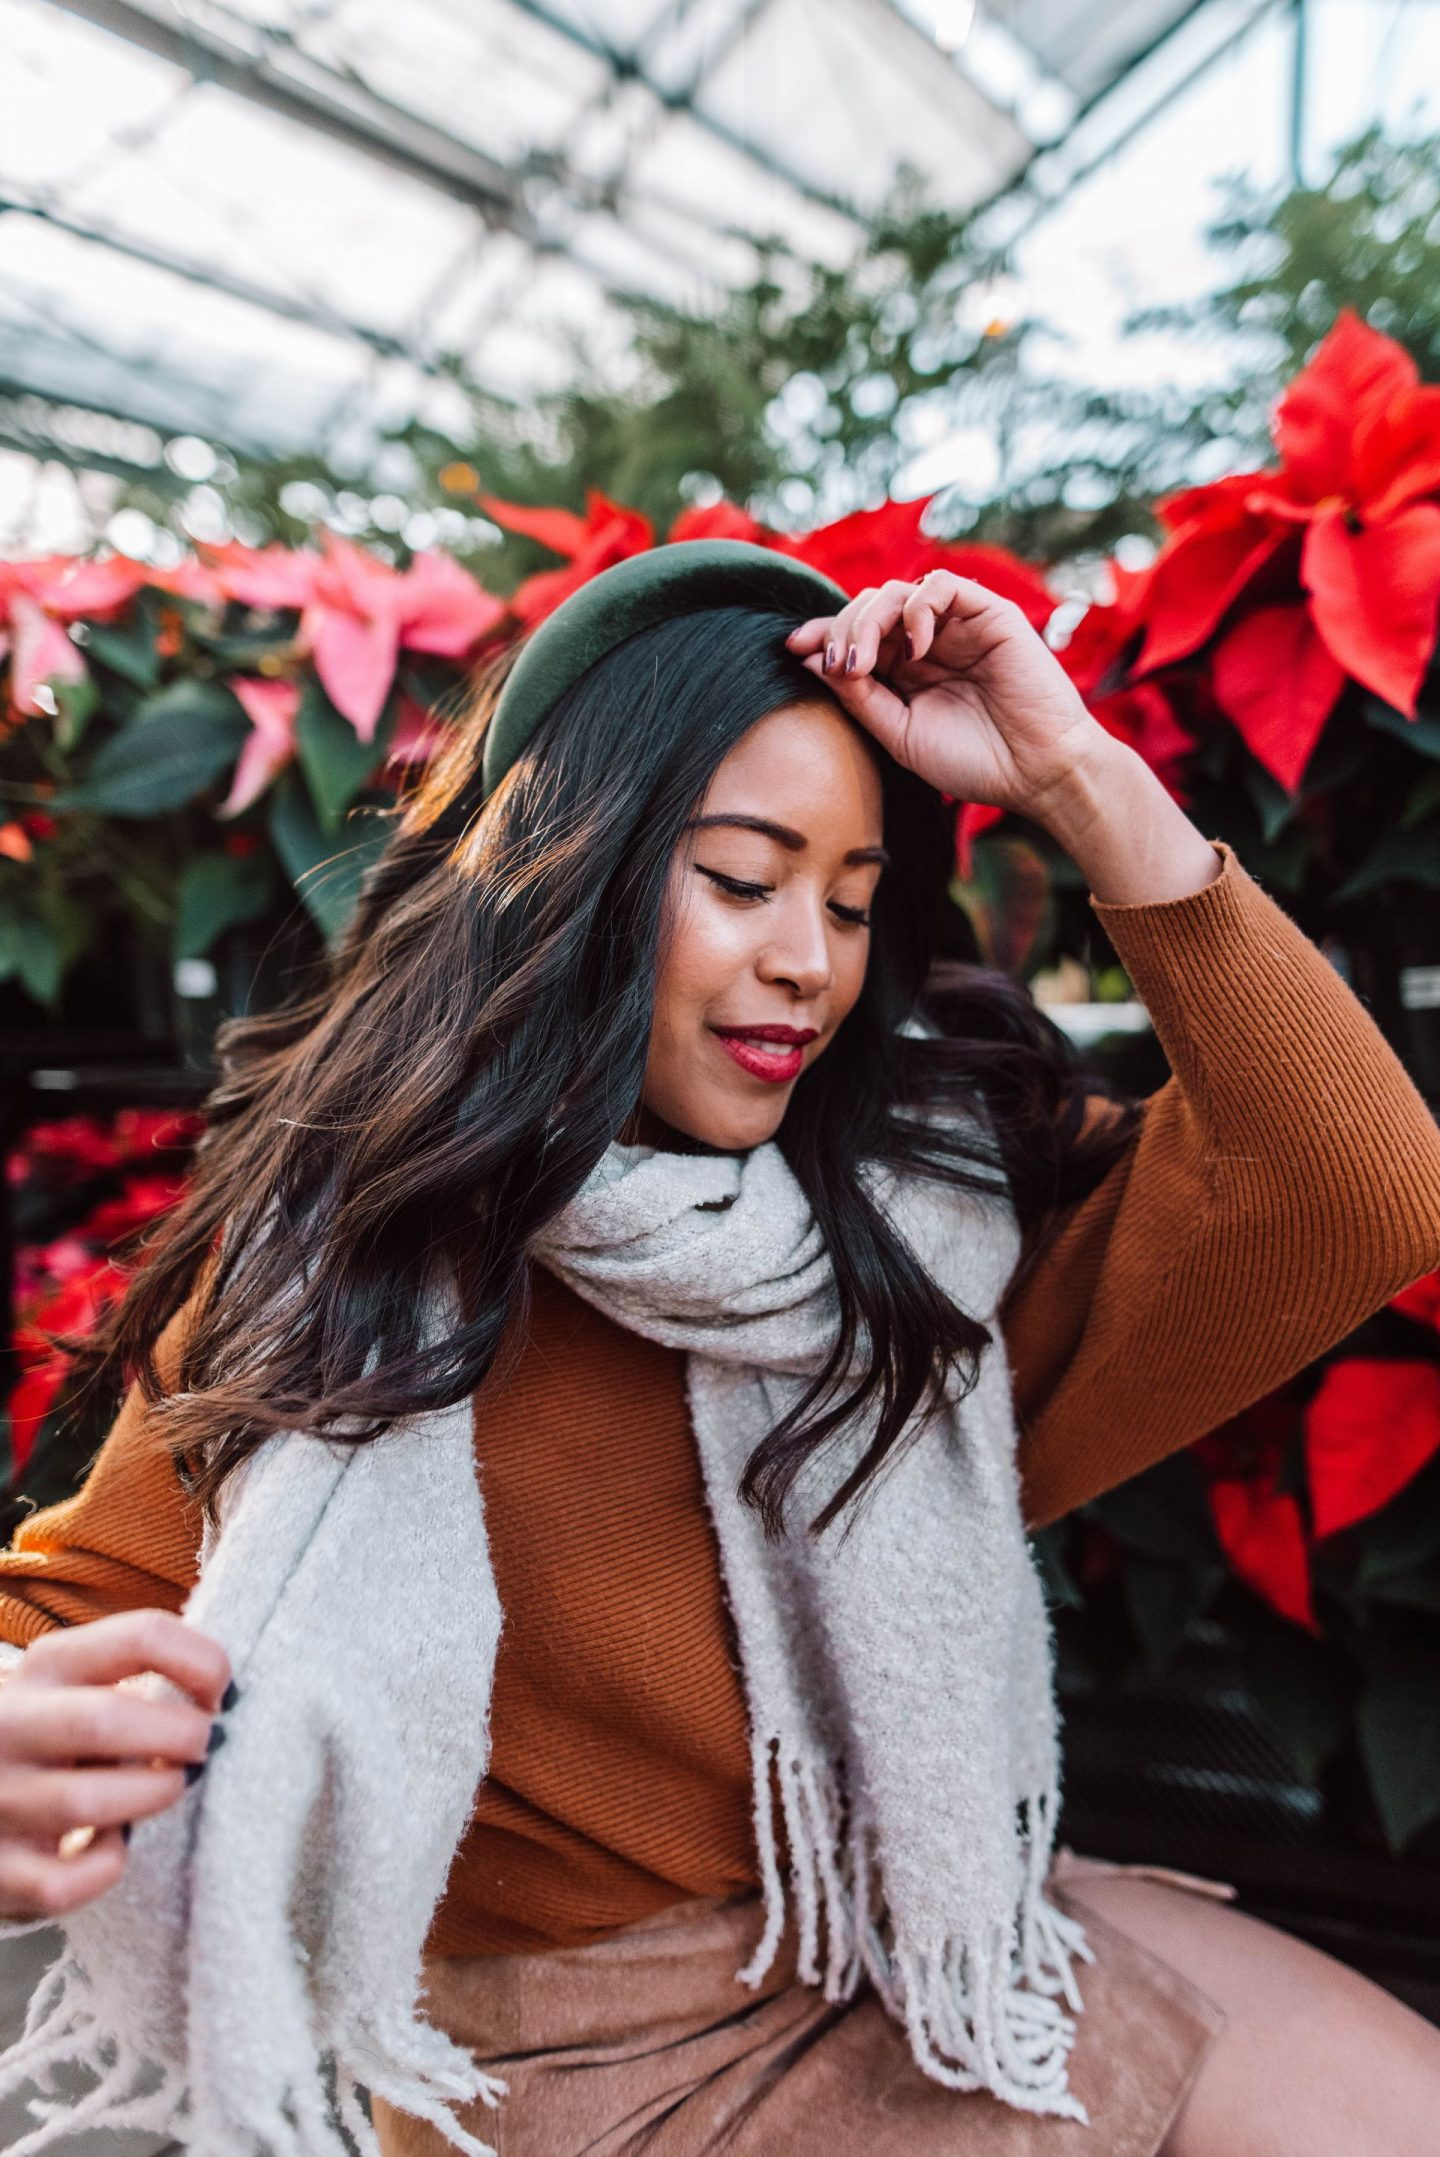 poinsettias - winter photo ideas - winter photo ideas Instagram – winter photo shoot – winter photo outfits - winter photo shoot ideas for women – Winter outfit ideas - winter outfit ideas for women casual